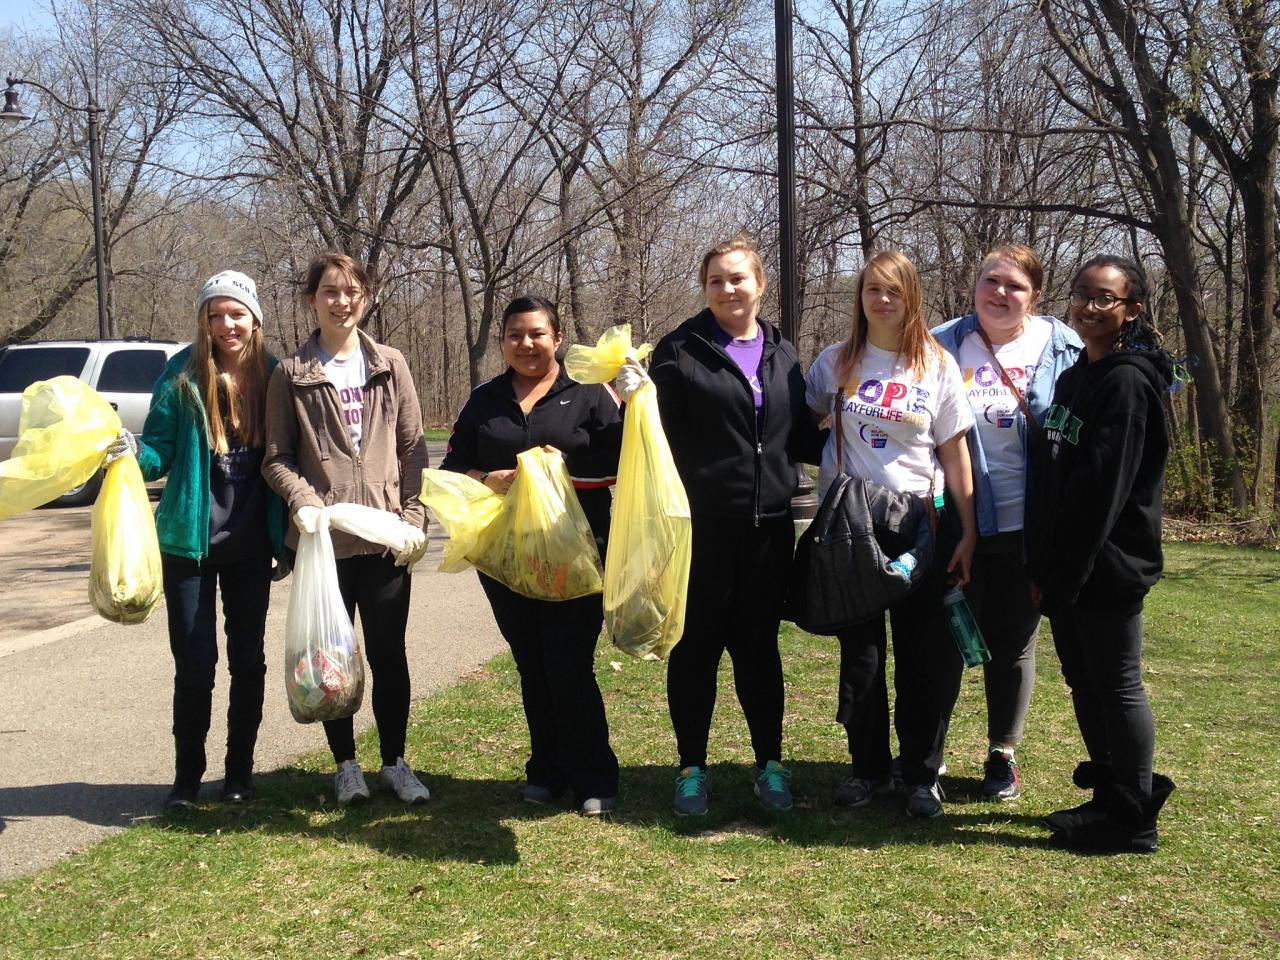 Image: A group of previous Earth Day volunteers returning with their haul